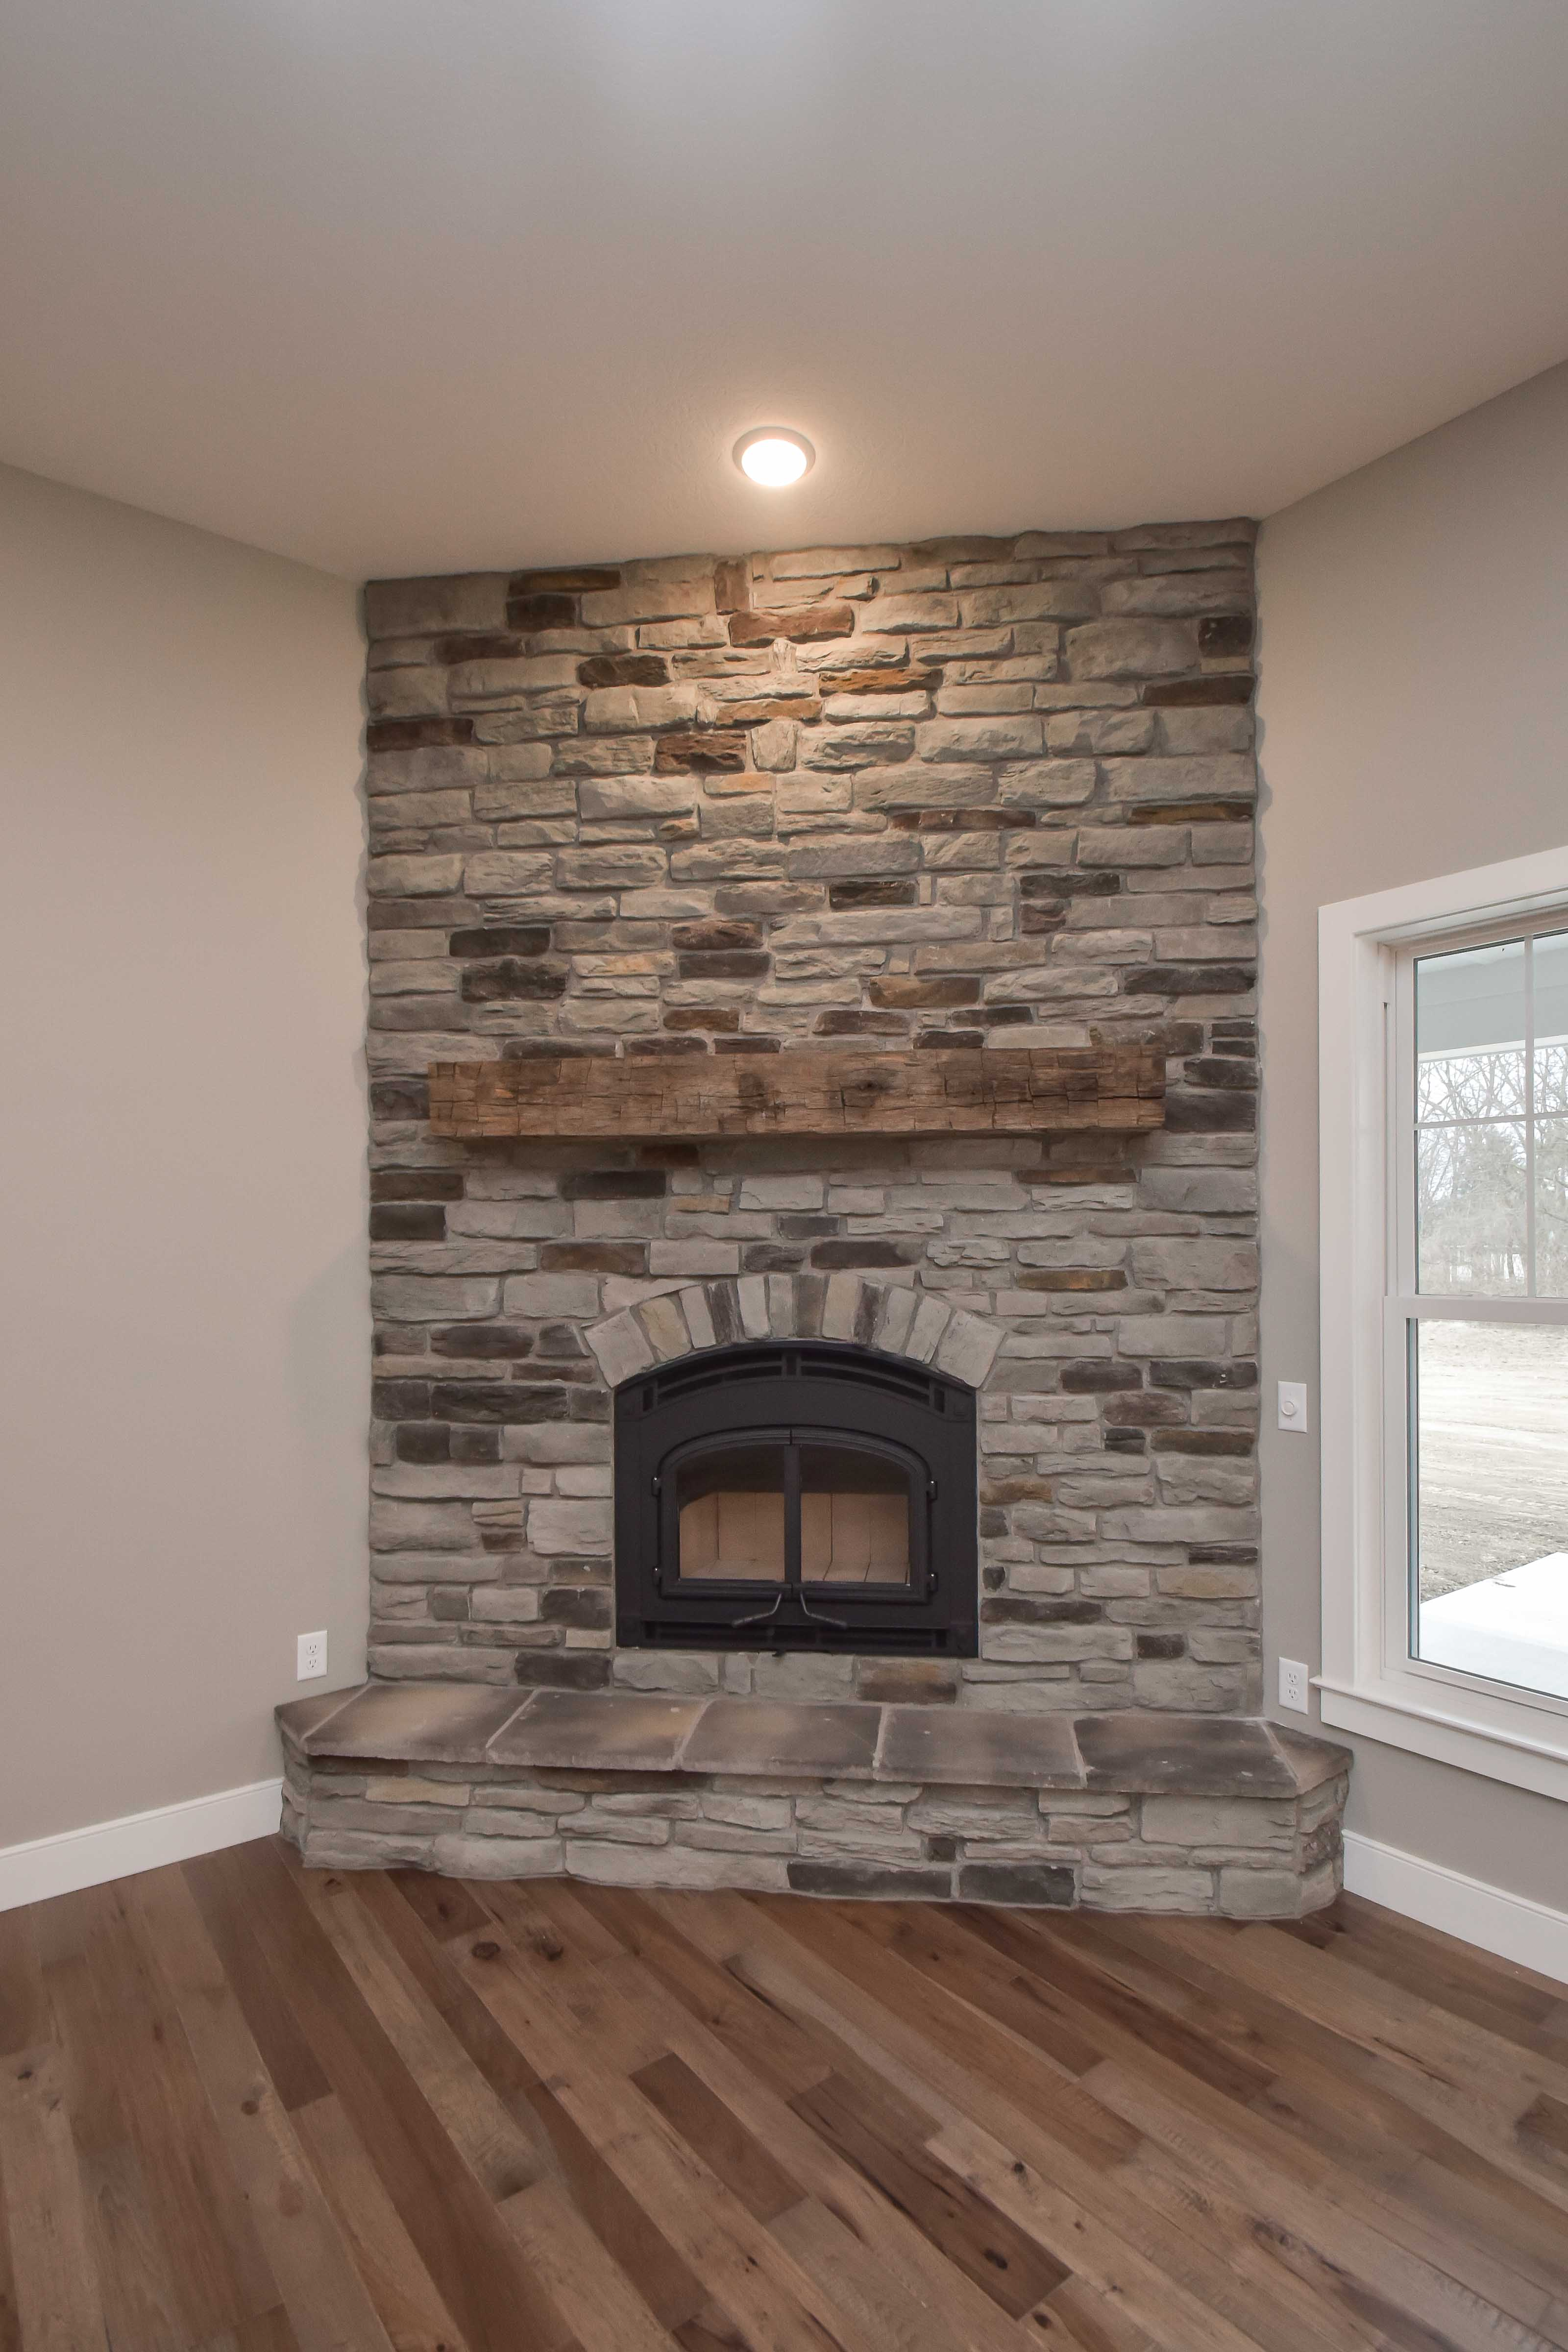 Wood burning fireplace (Quadra-Fire 7100-Mission Hill Black front), raised hearth, Steinhaus Stack Ledge stone